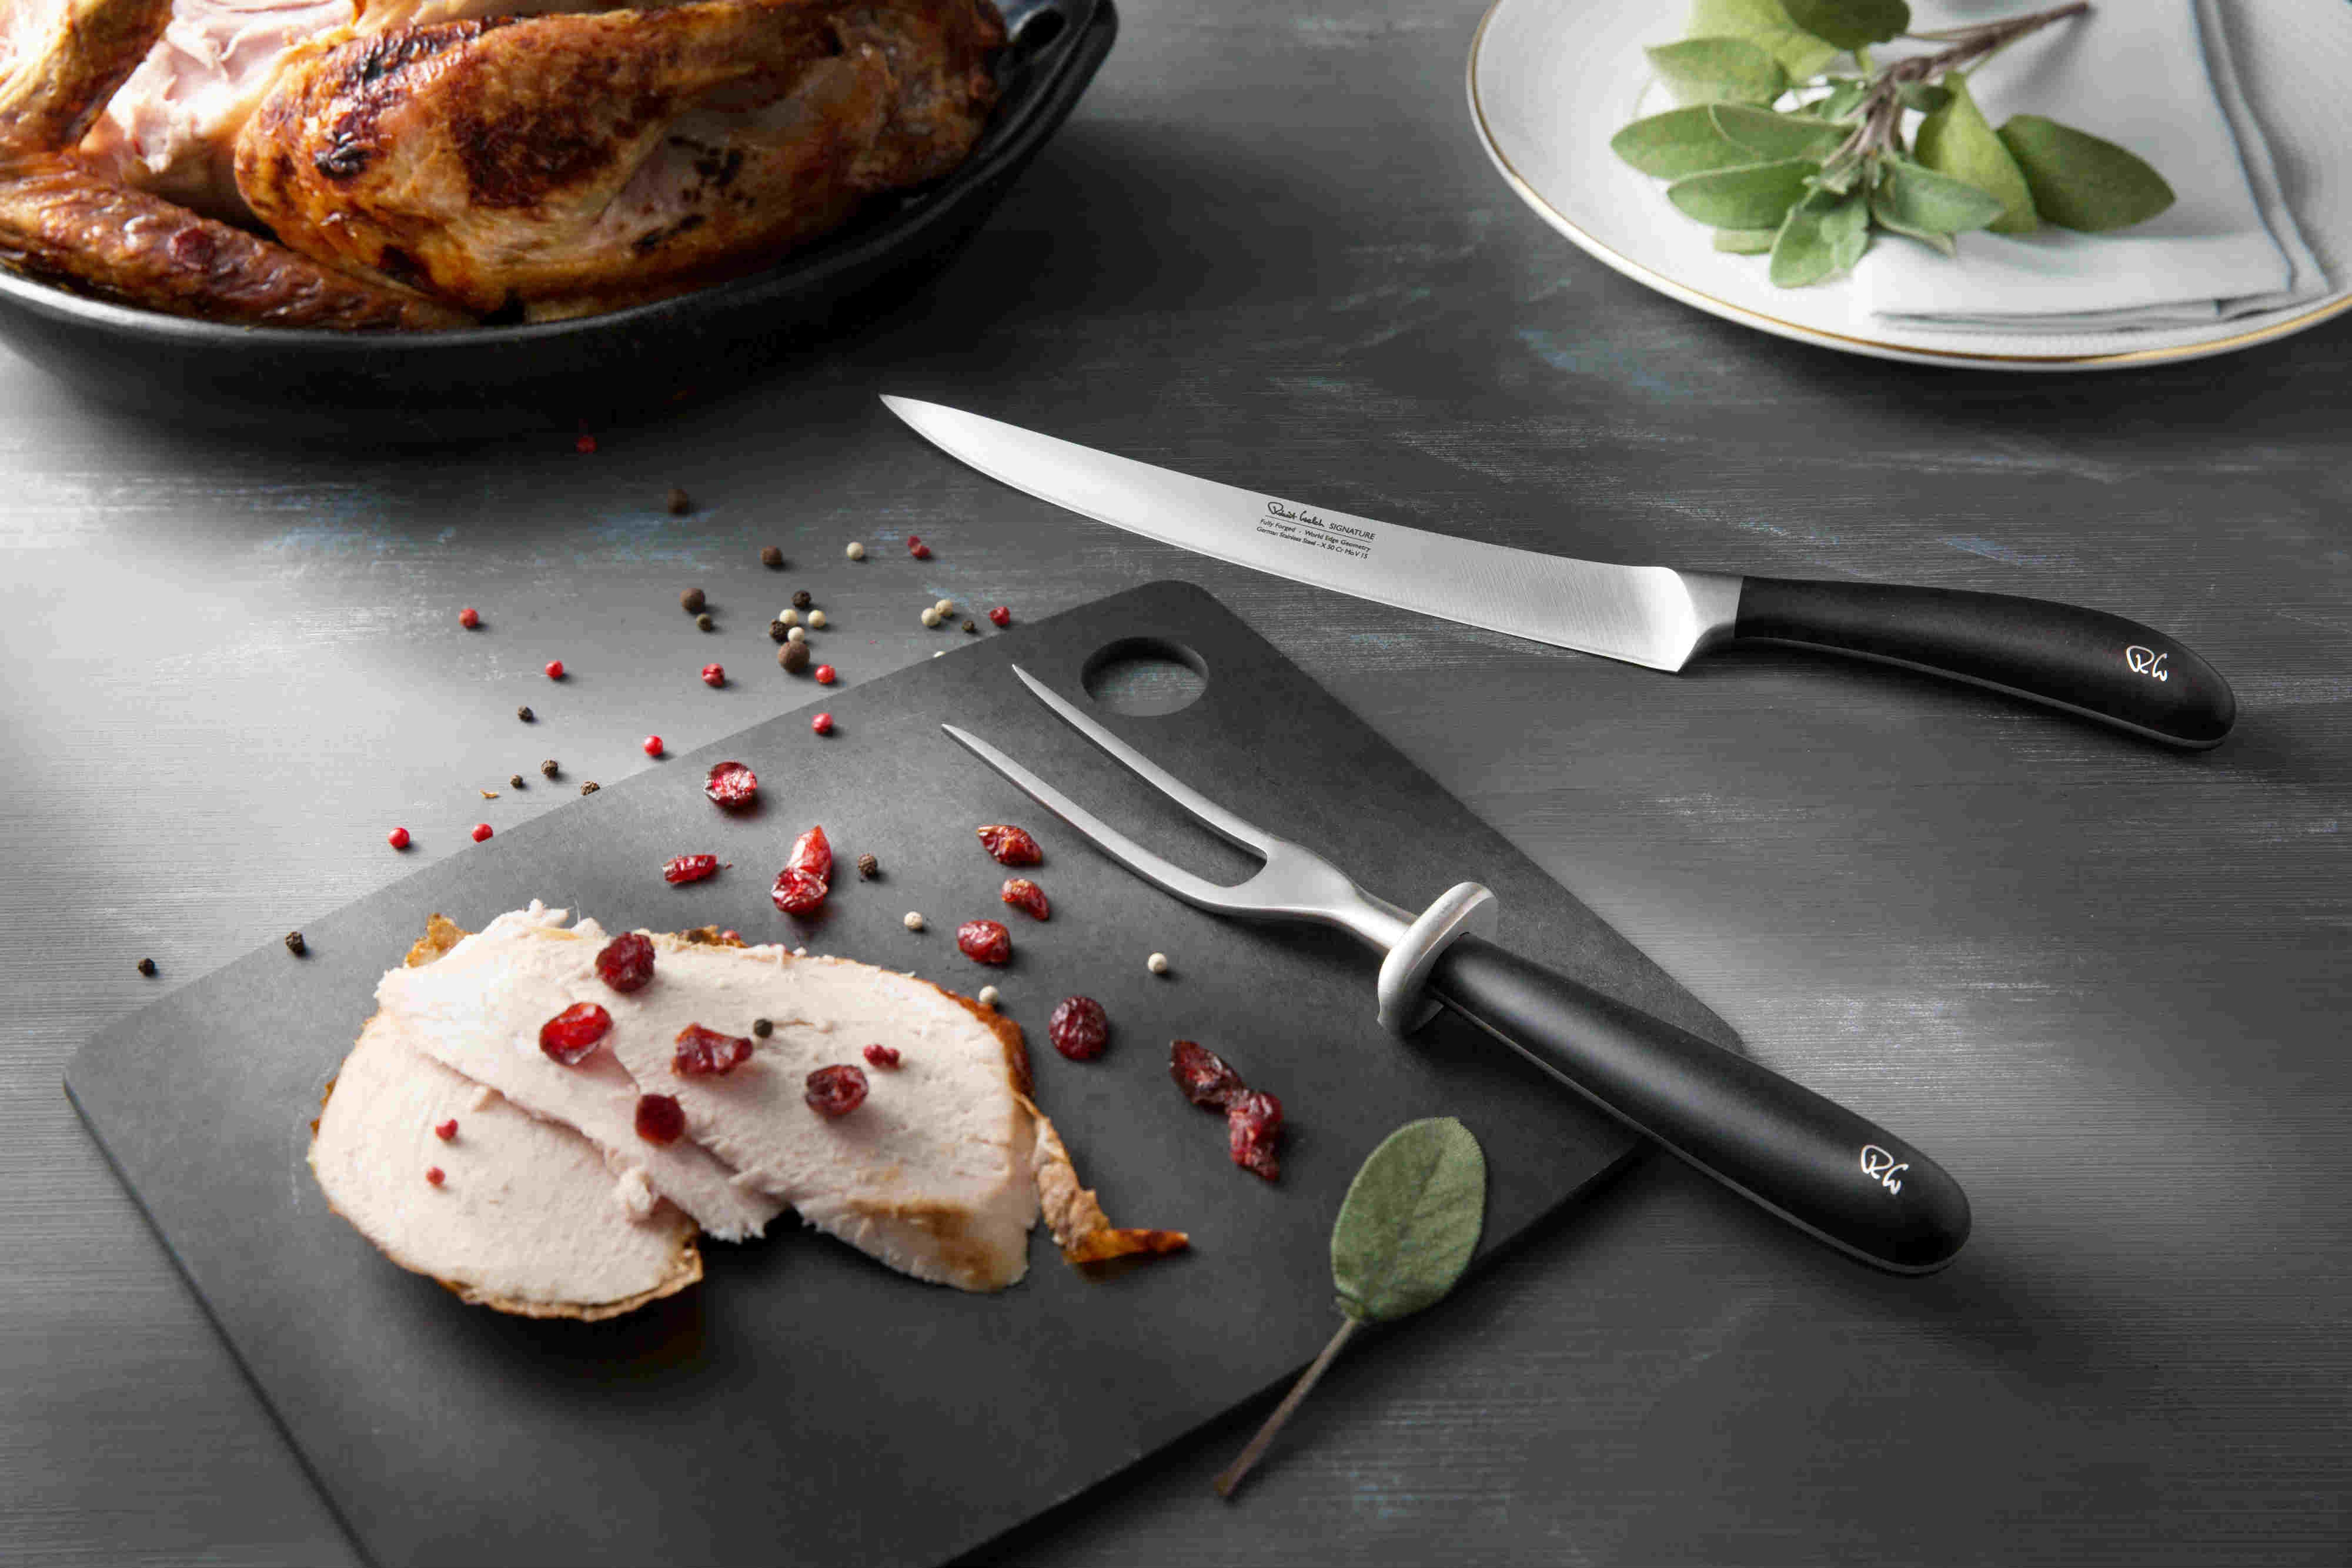 Multi award-winning designs - Robert Welch Cutlery and Kitchen Knives. Some Limited Edition sets on special offer while stocks last.